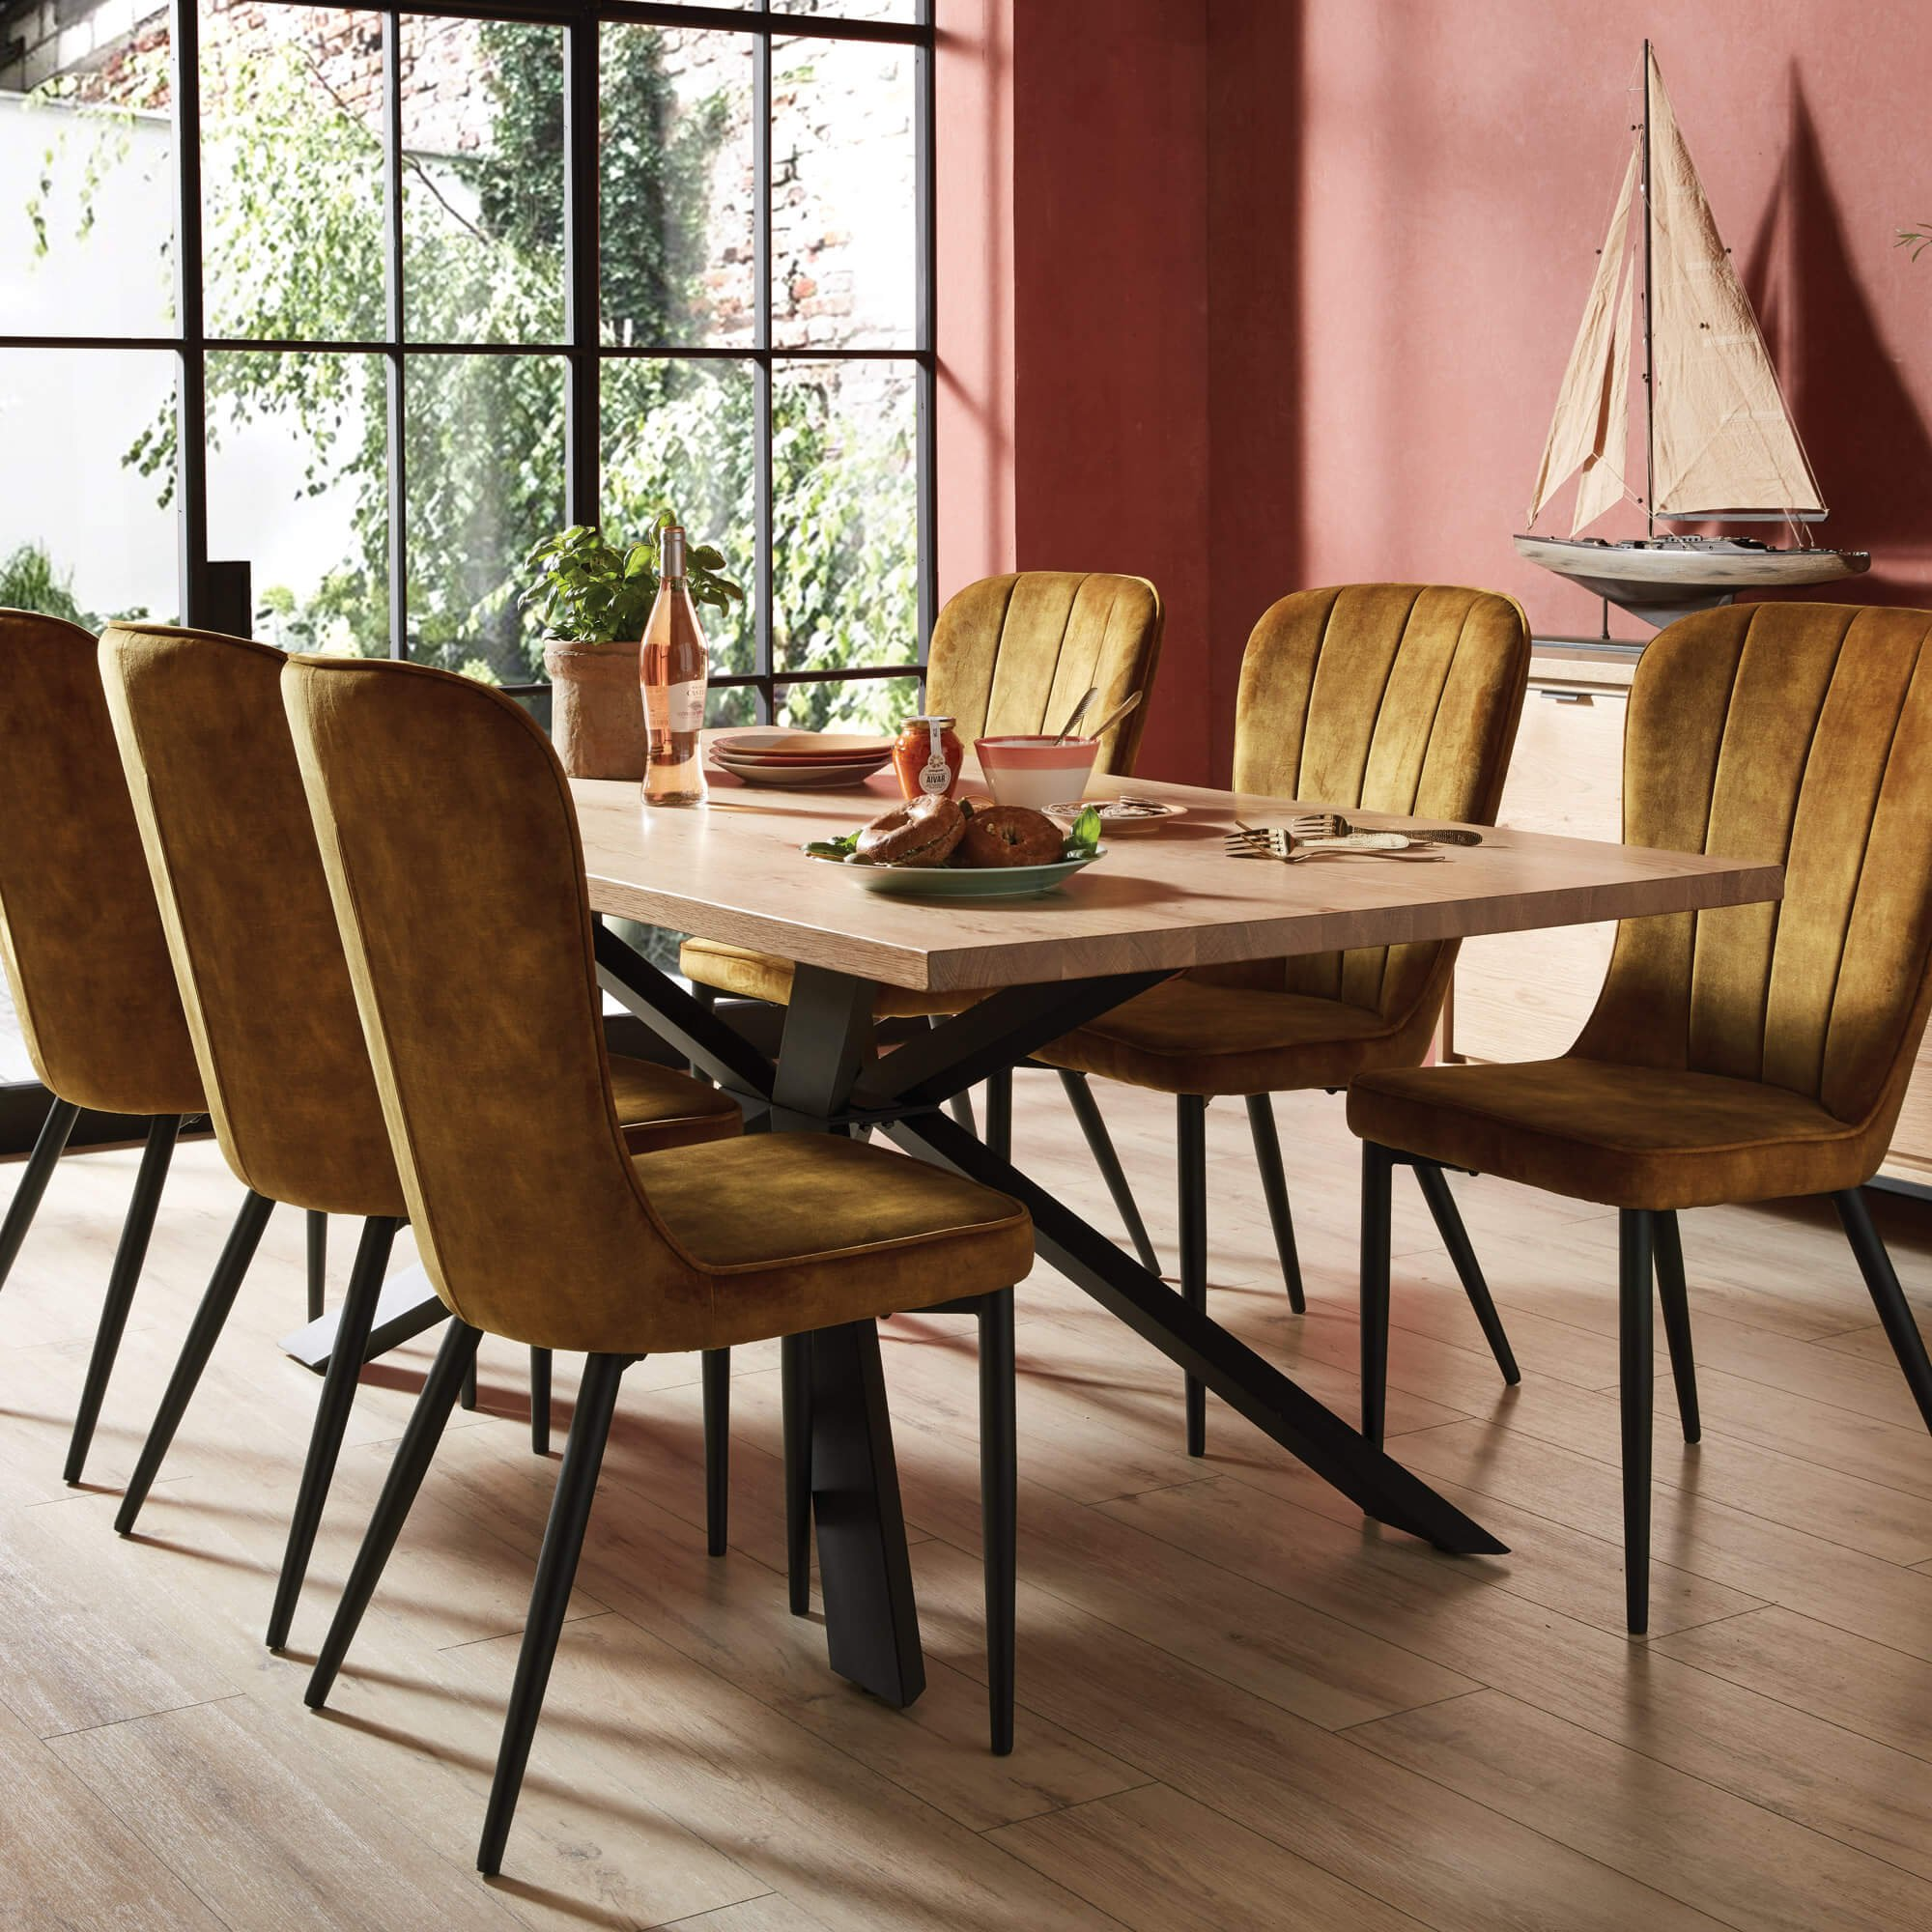 Housing Units- Dining Table and Yellow Chairs